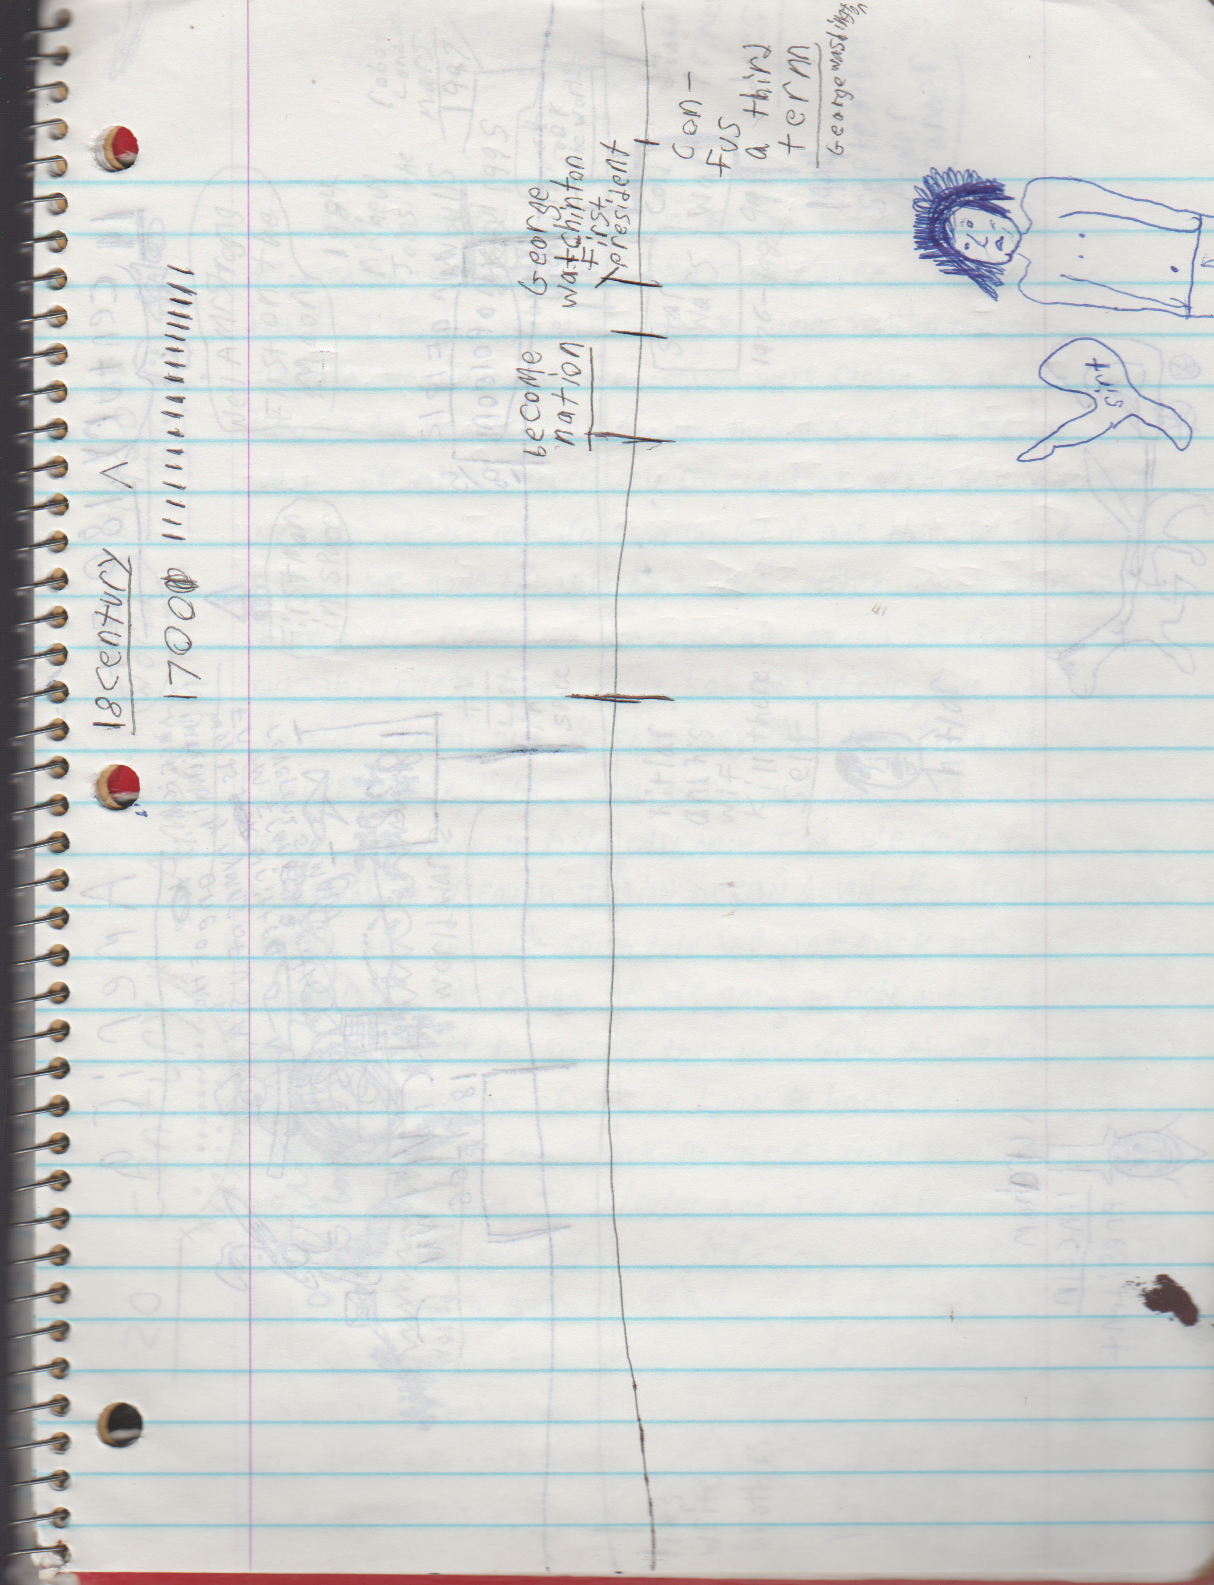 1996-08-18 - Saturday - 11 yr old Joey Arnold's School Book, dates through to 1998 apx, mostly 96, Writings, Drawings, Etc-088.png